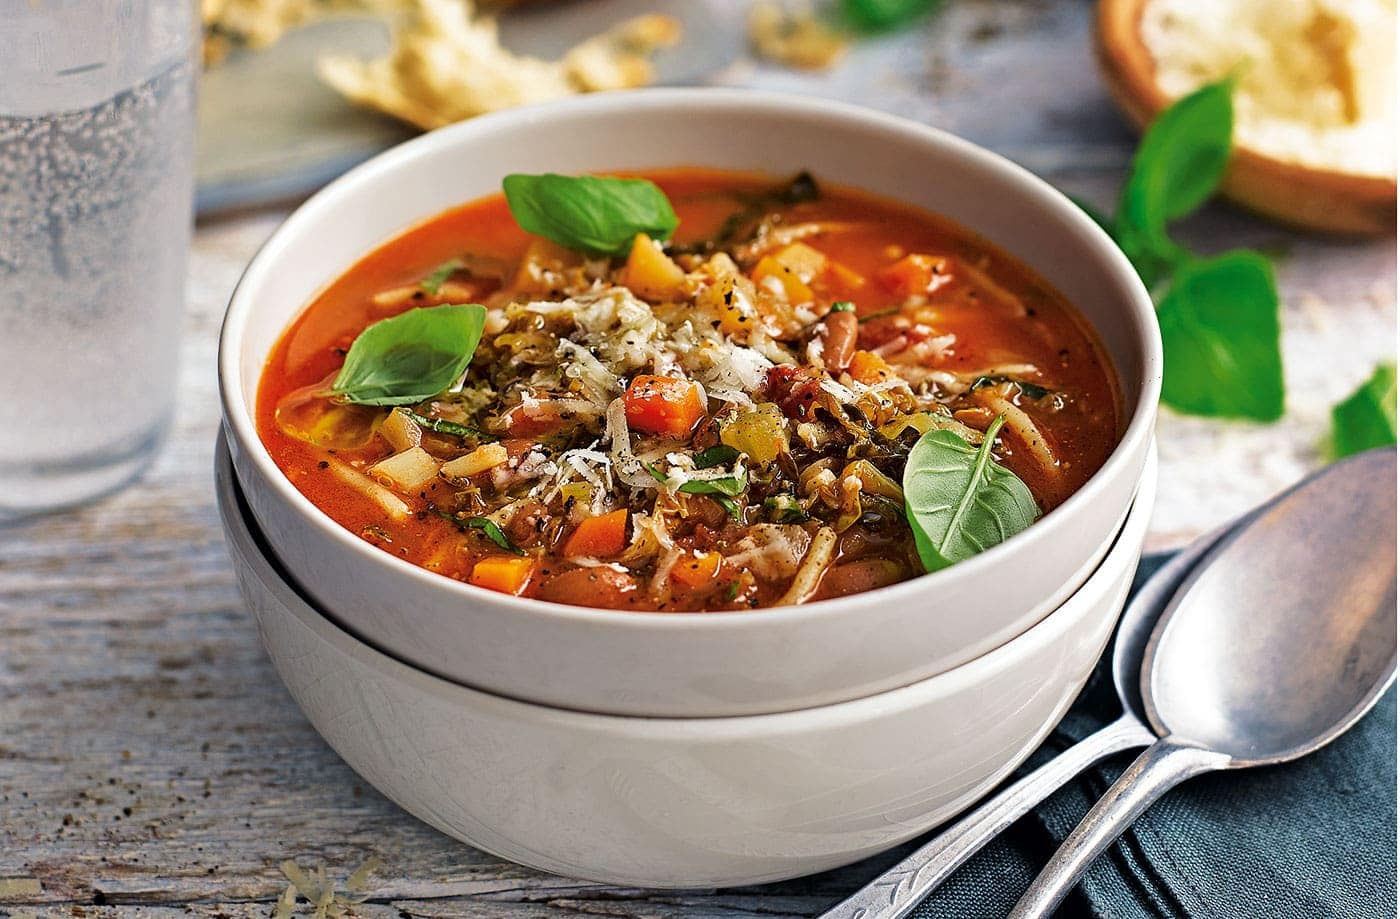 How to Make Minestrone Soup How to Make Minestrone Soup new photo